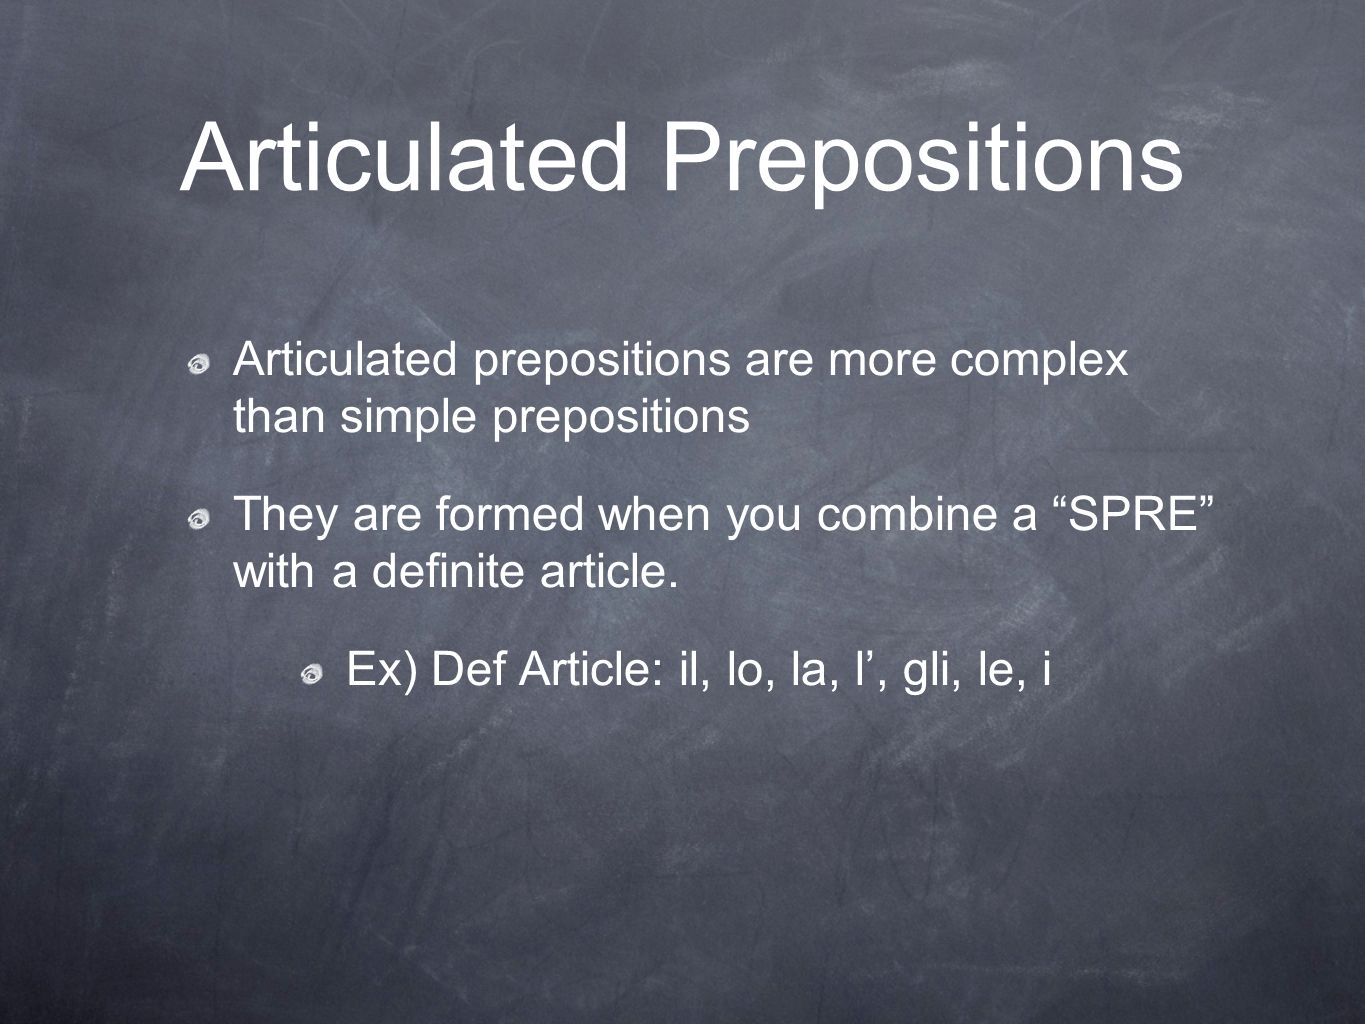 Articulated Prepositions